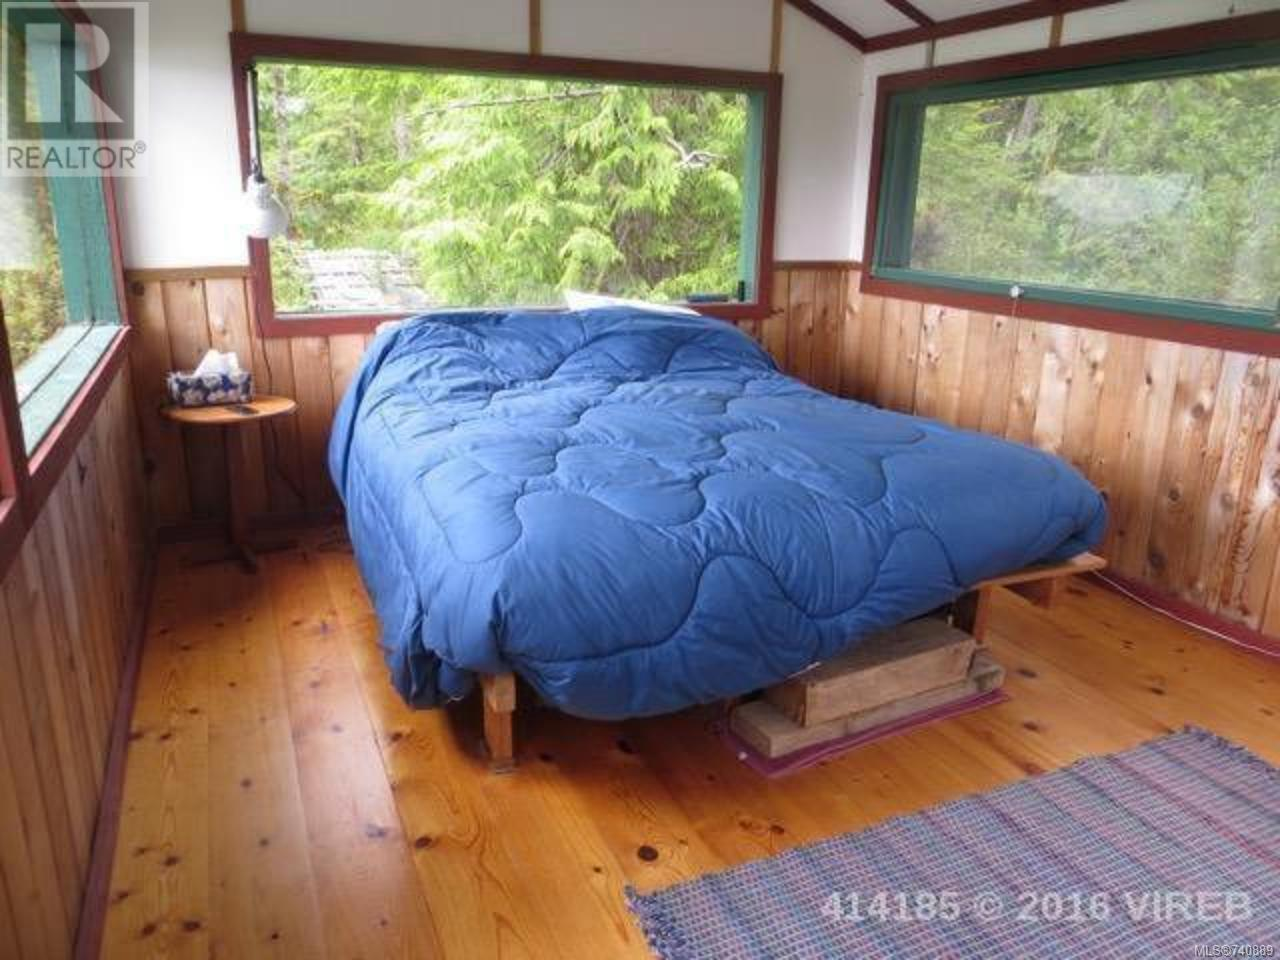 MLS® #740889 - Tofino House For sale Image #15